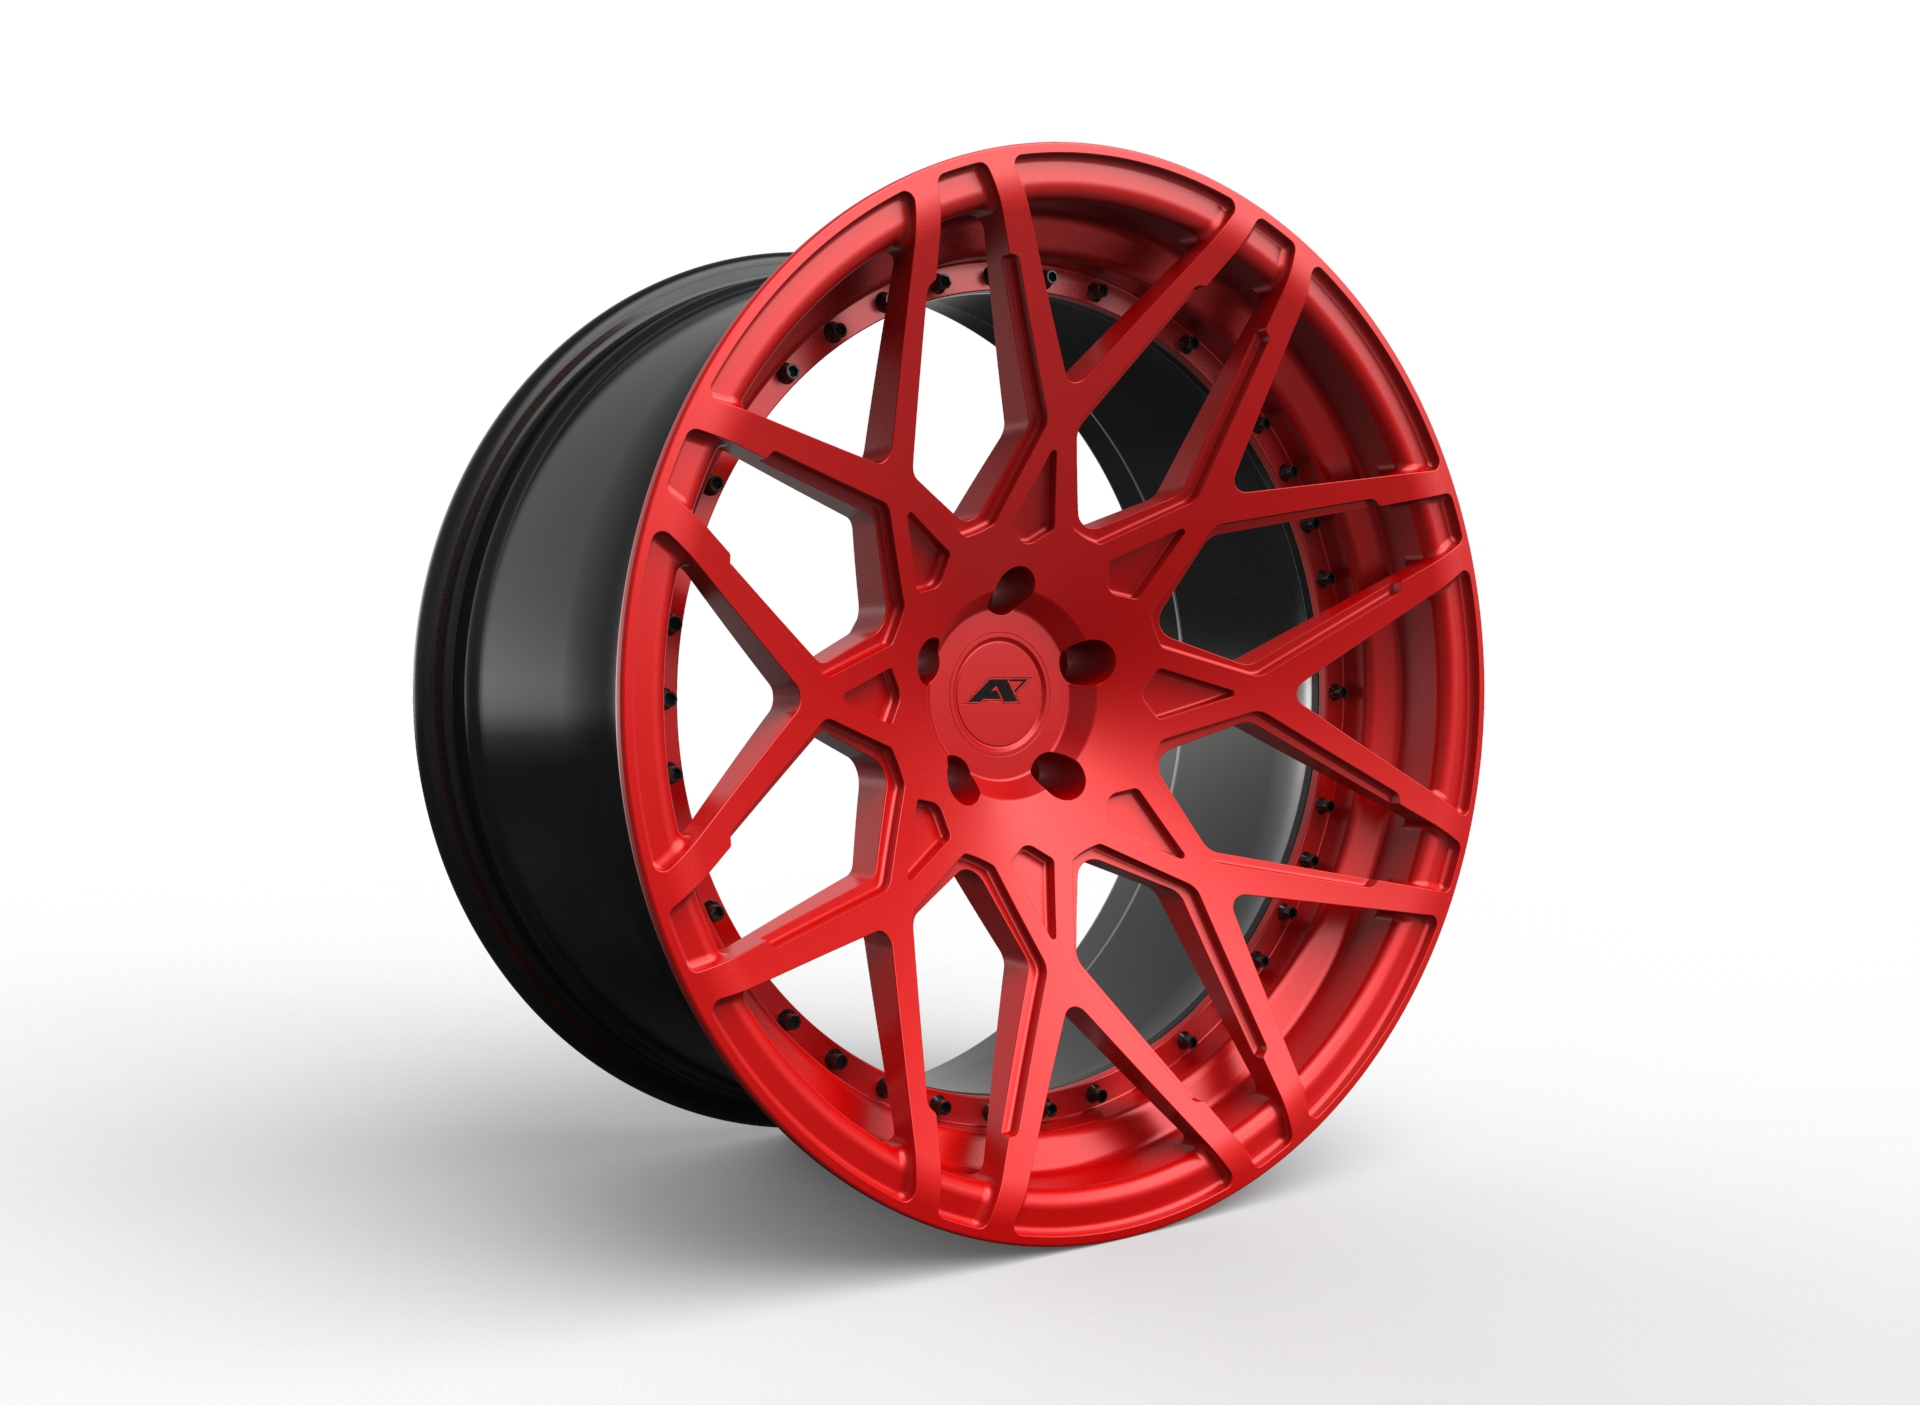 alphamale_wheels_4.931.jpg